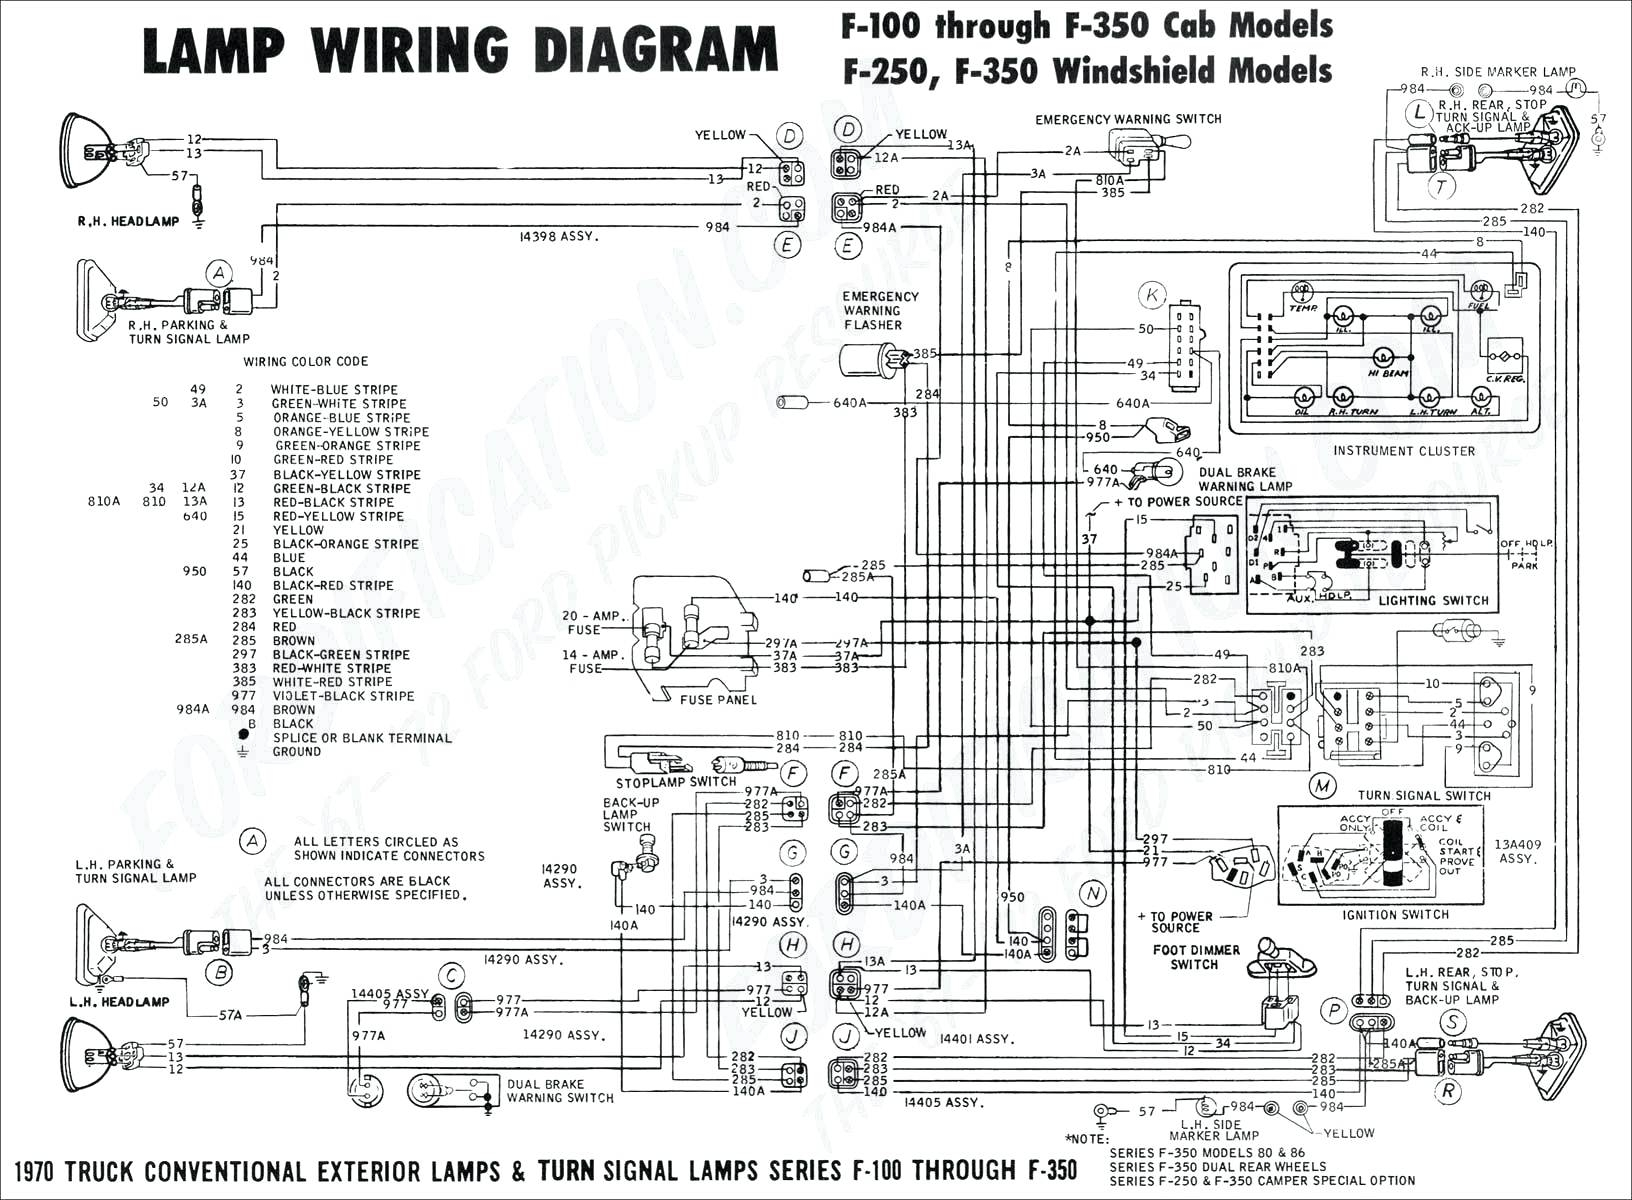 case international 895 wiring diagram case ih 7140 wiring schematic | free wiring diagram case international tractor wiring diagram